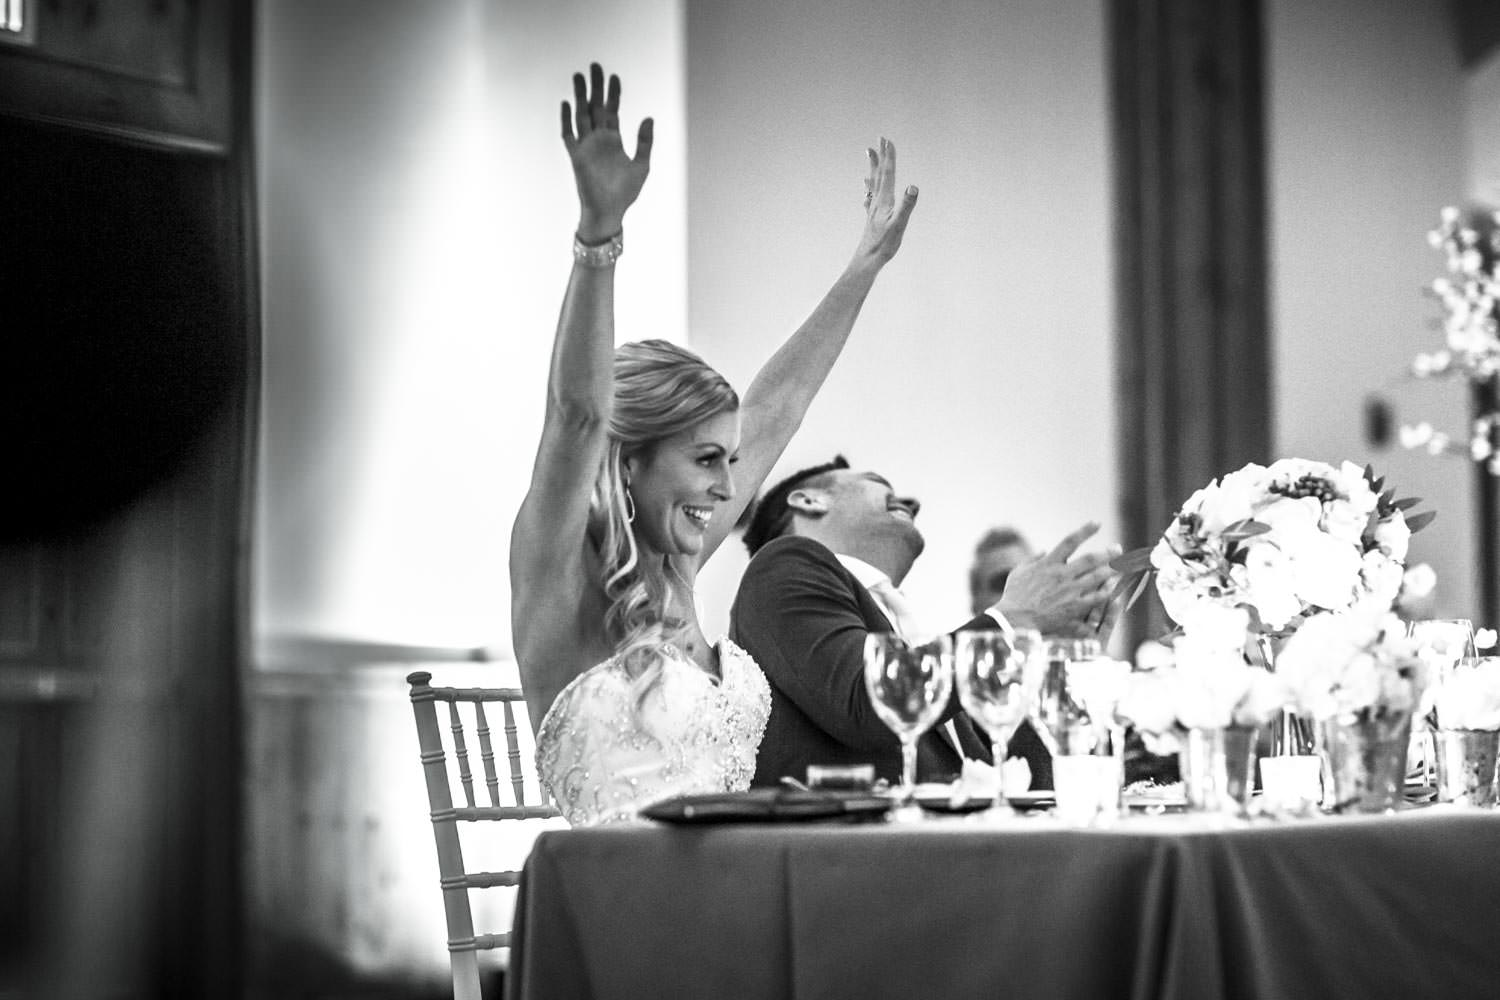 bride with hands up in celebration at conclusion of best man's wedding speech